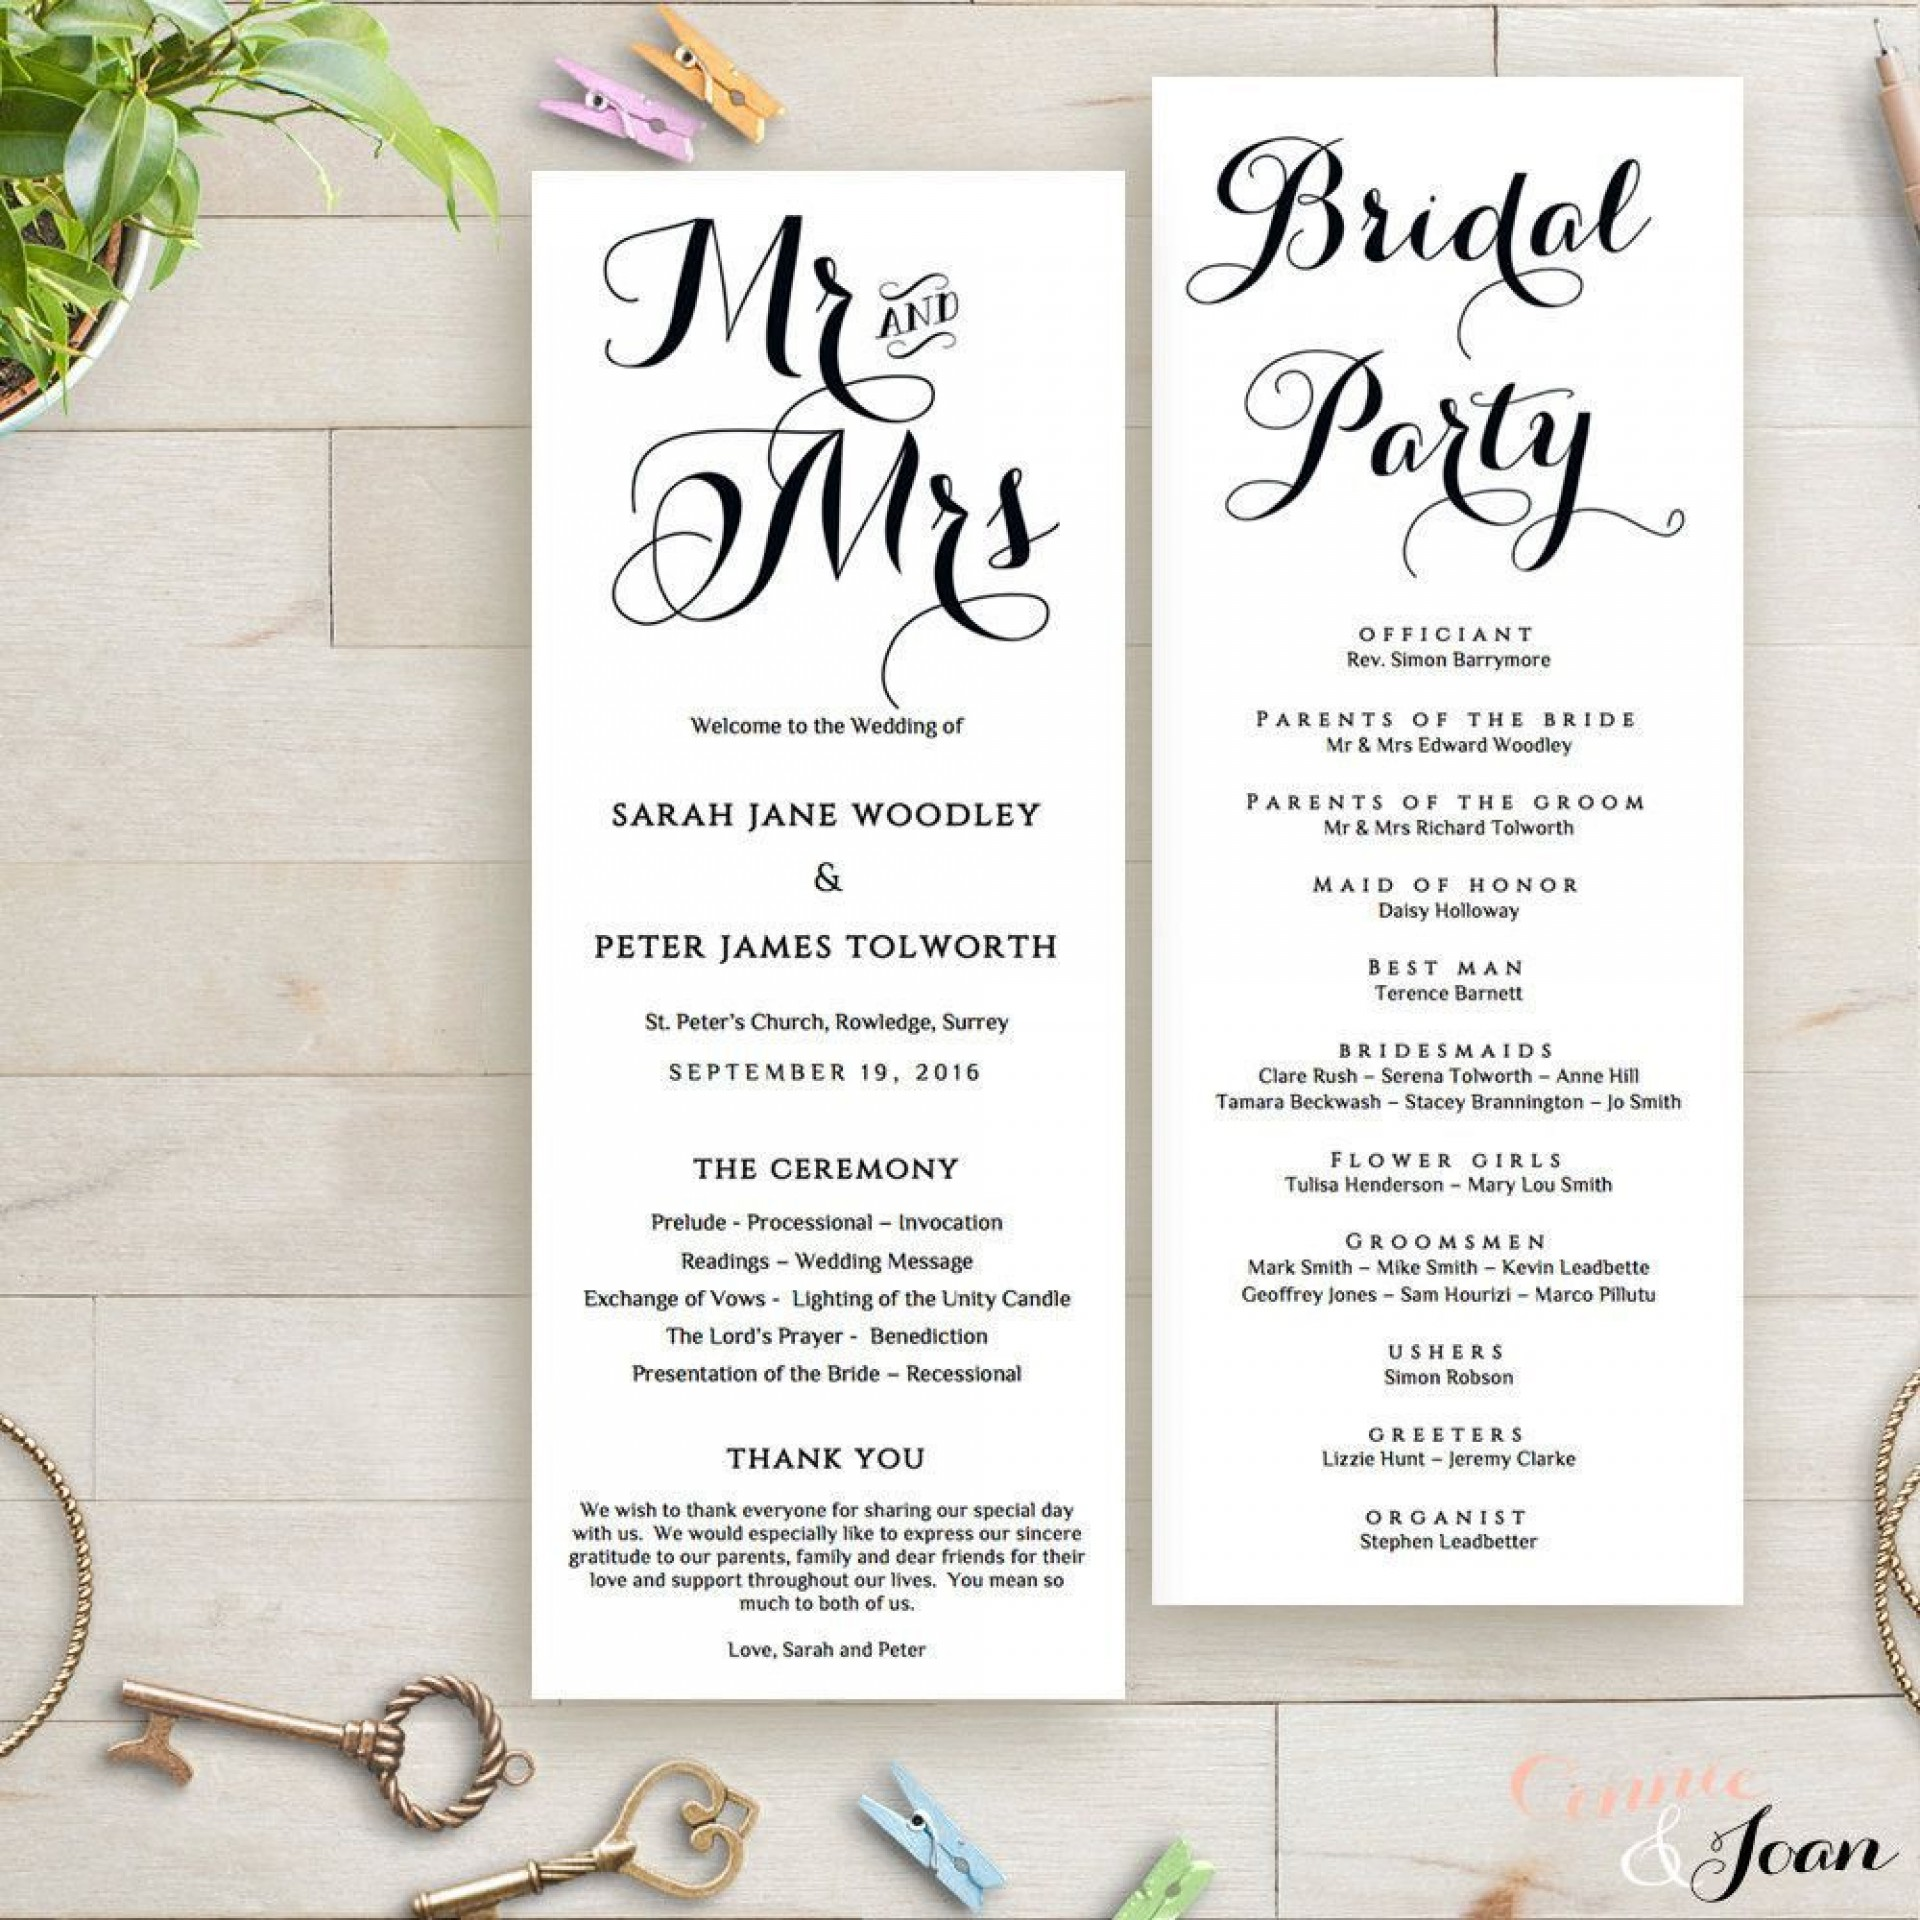 004 Marvelou Wedding Order Of Service Template Free Download Picture  Downloadable That Can Be Printed1920